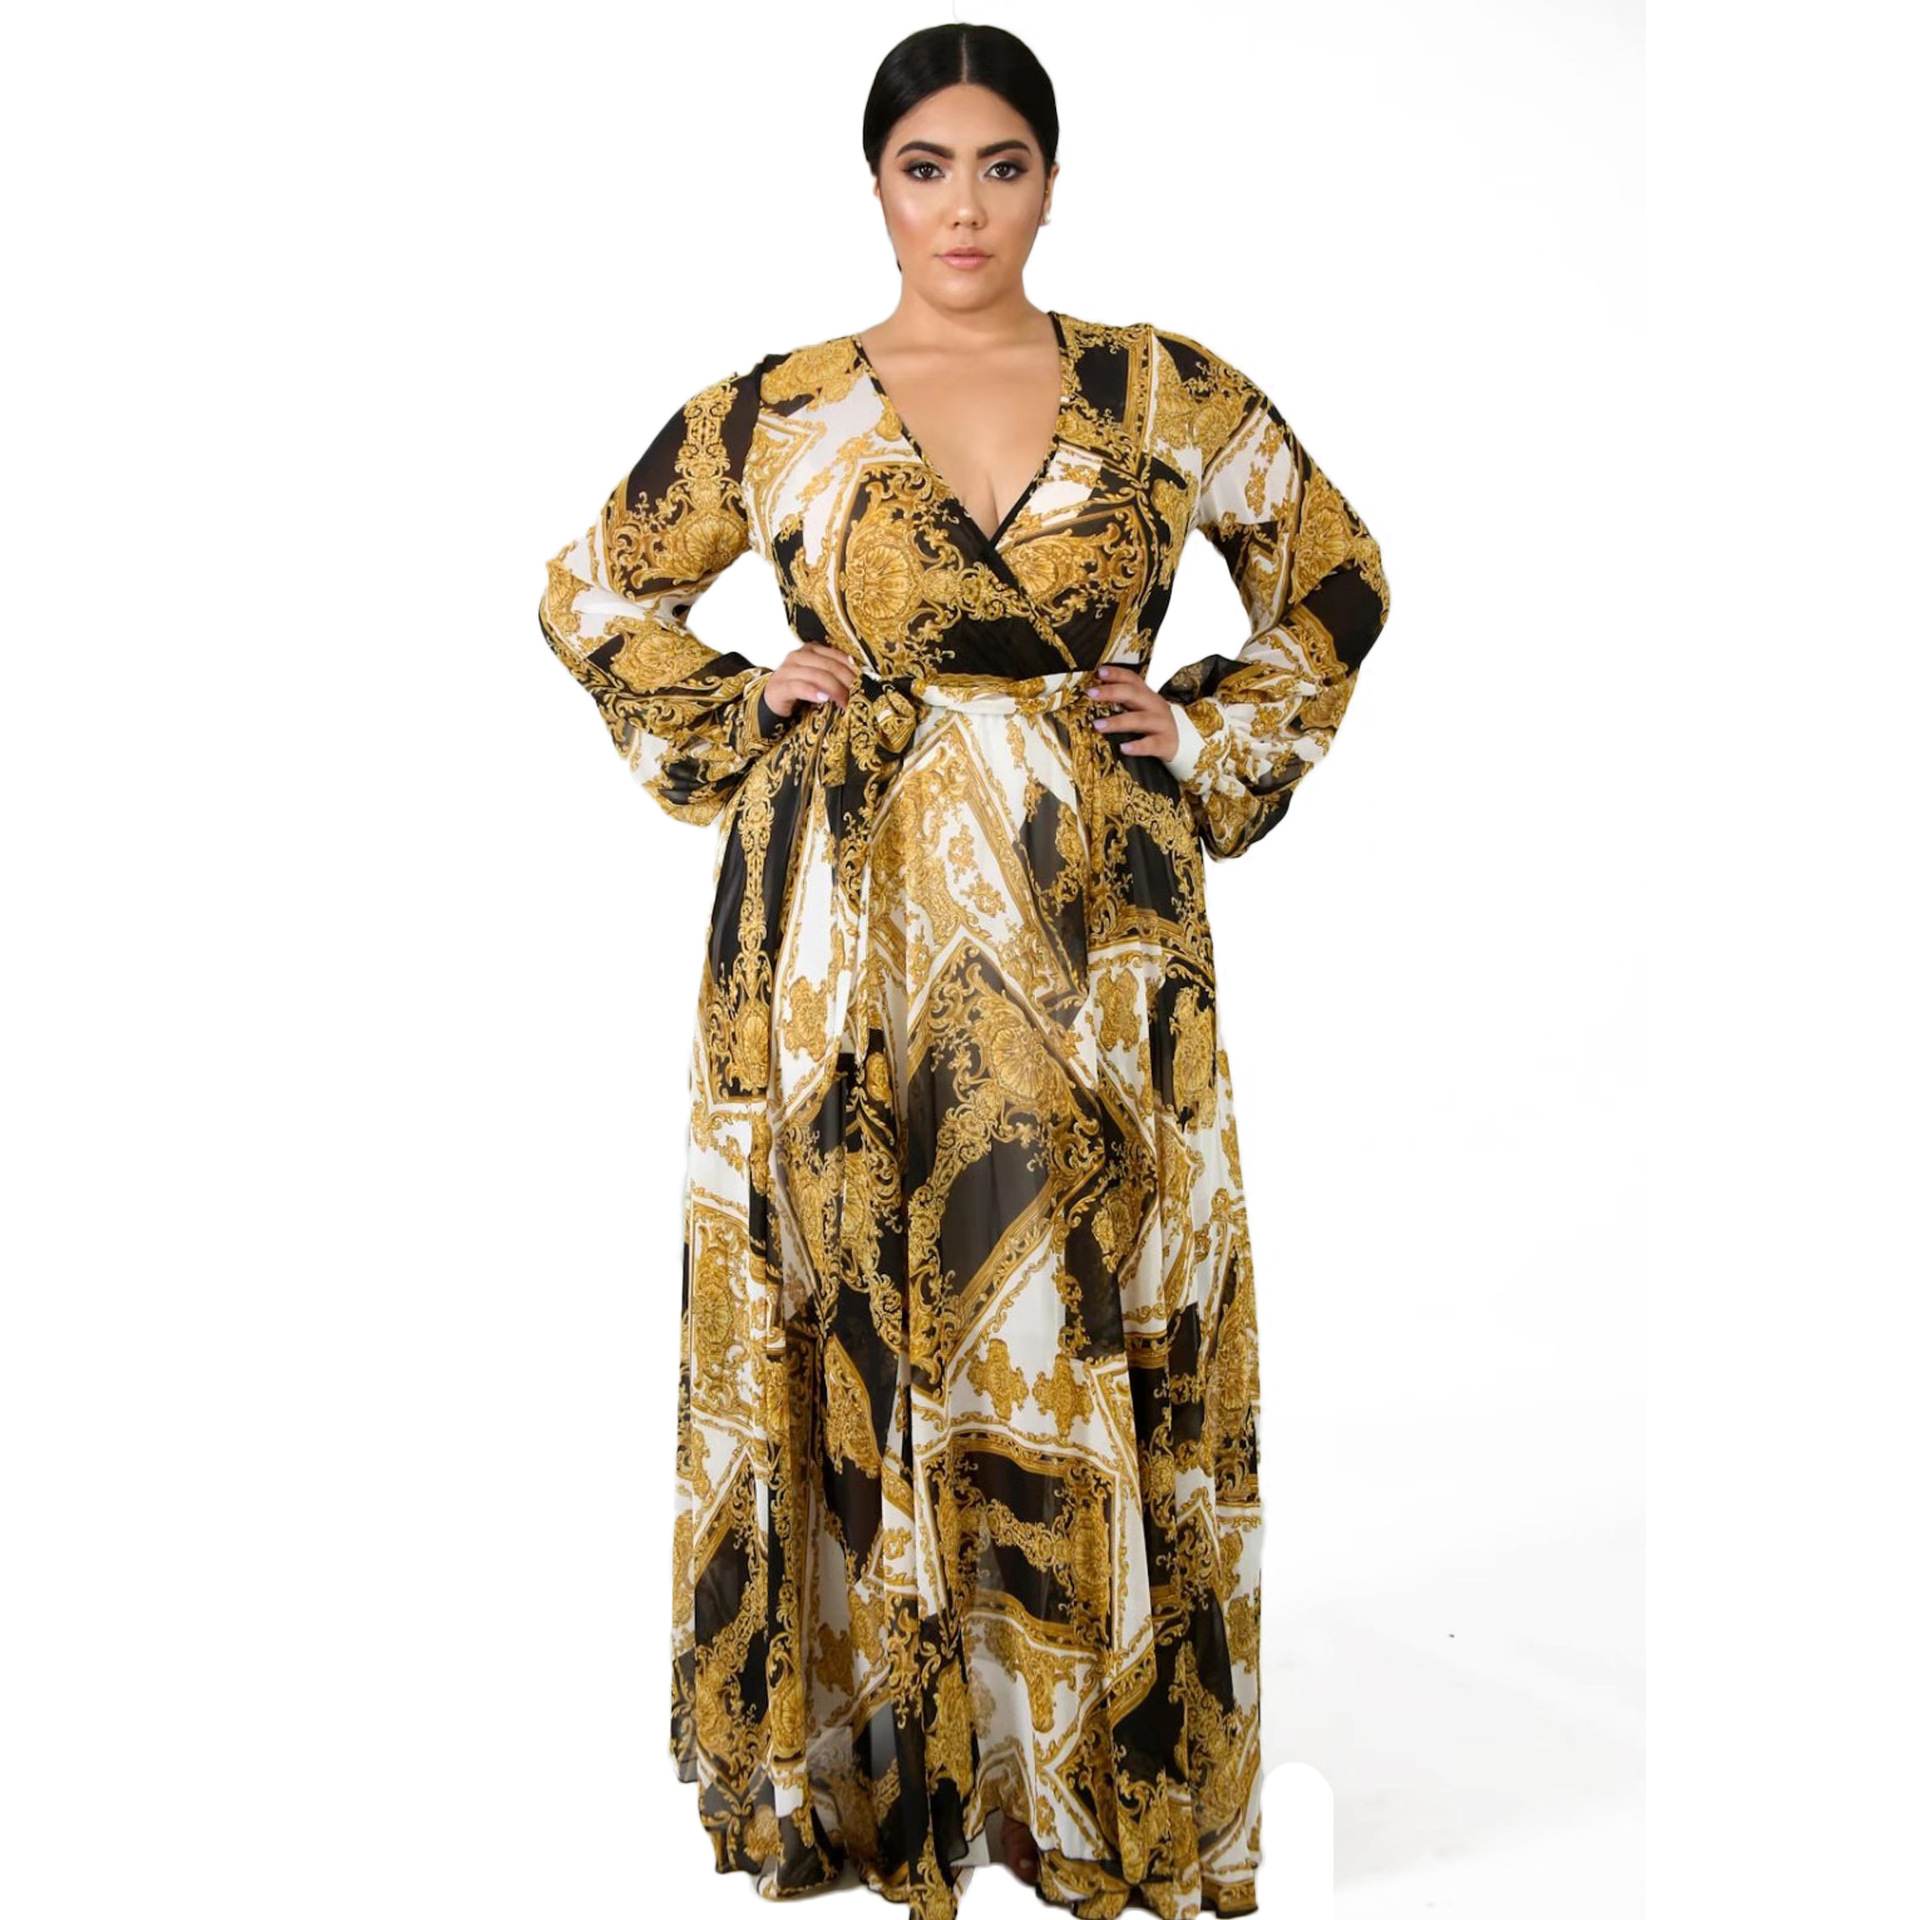 A New Print Printed Autumn/winter Dress For Women's Wear In Europe And America Has Become A Hot Seller For V-neck Dresses